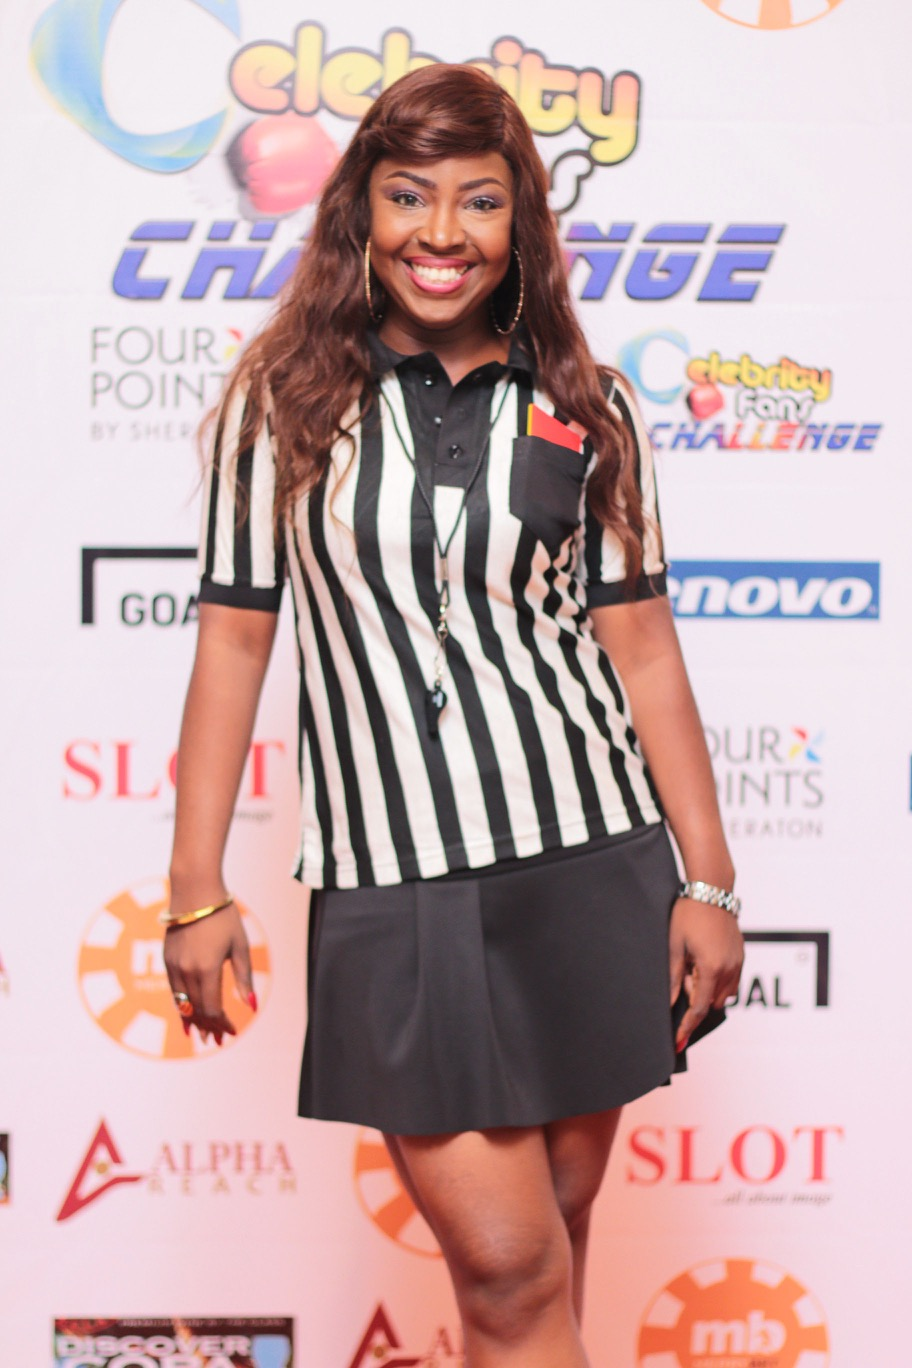 Kiibati Bankole host of Celebrity Fans Challenge 2015